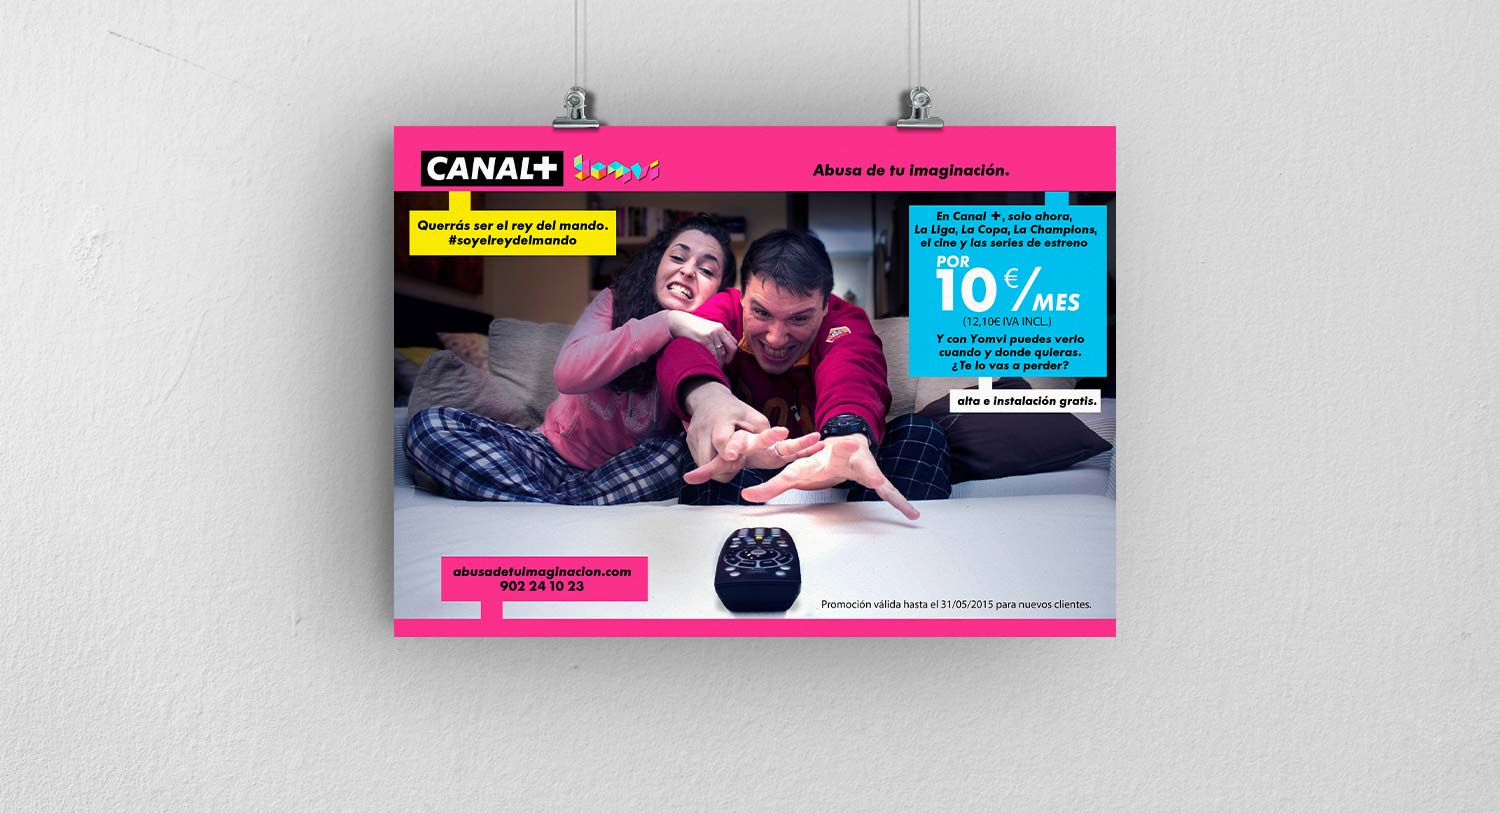 CANAL+11